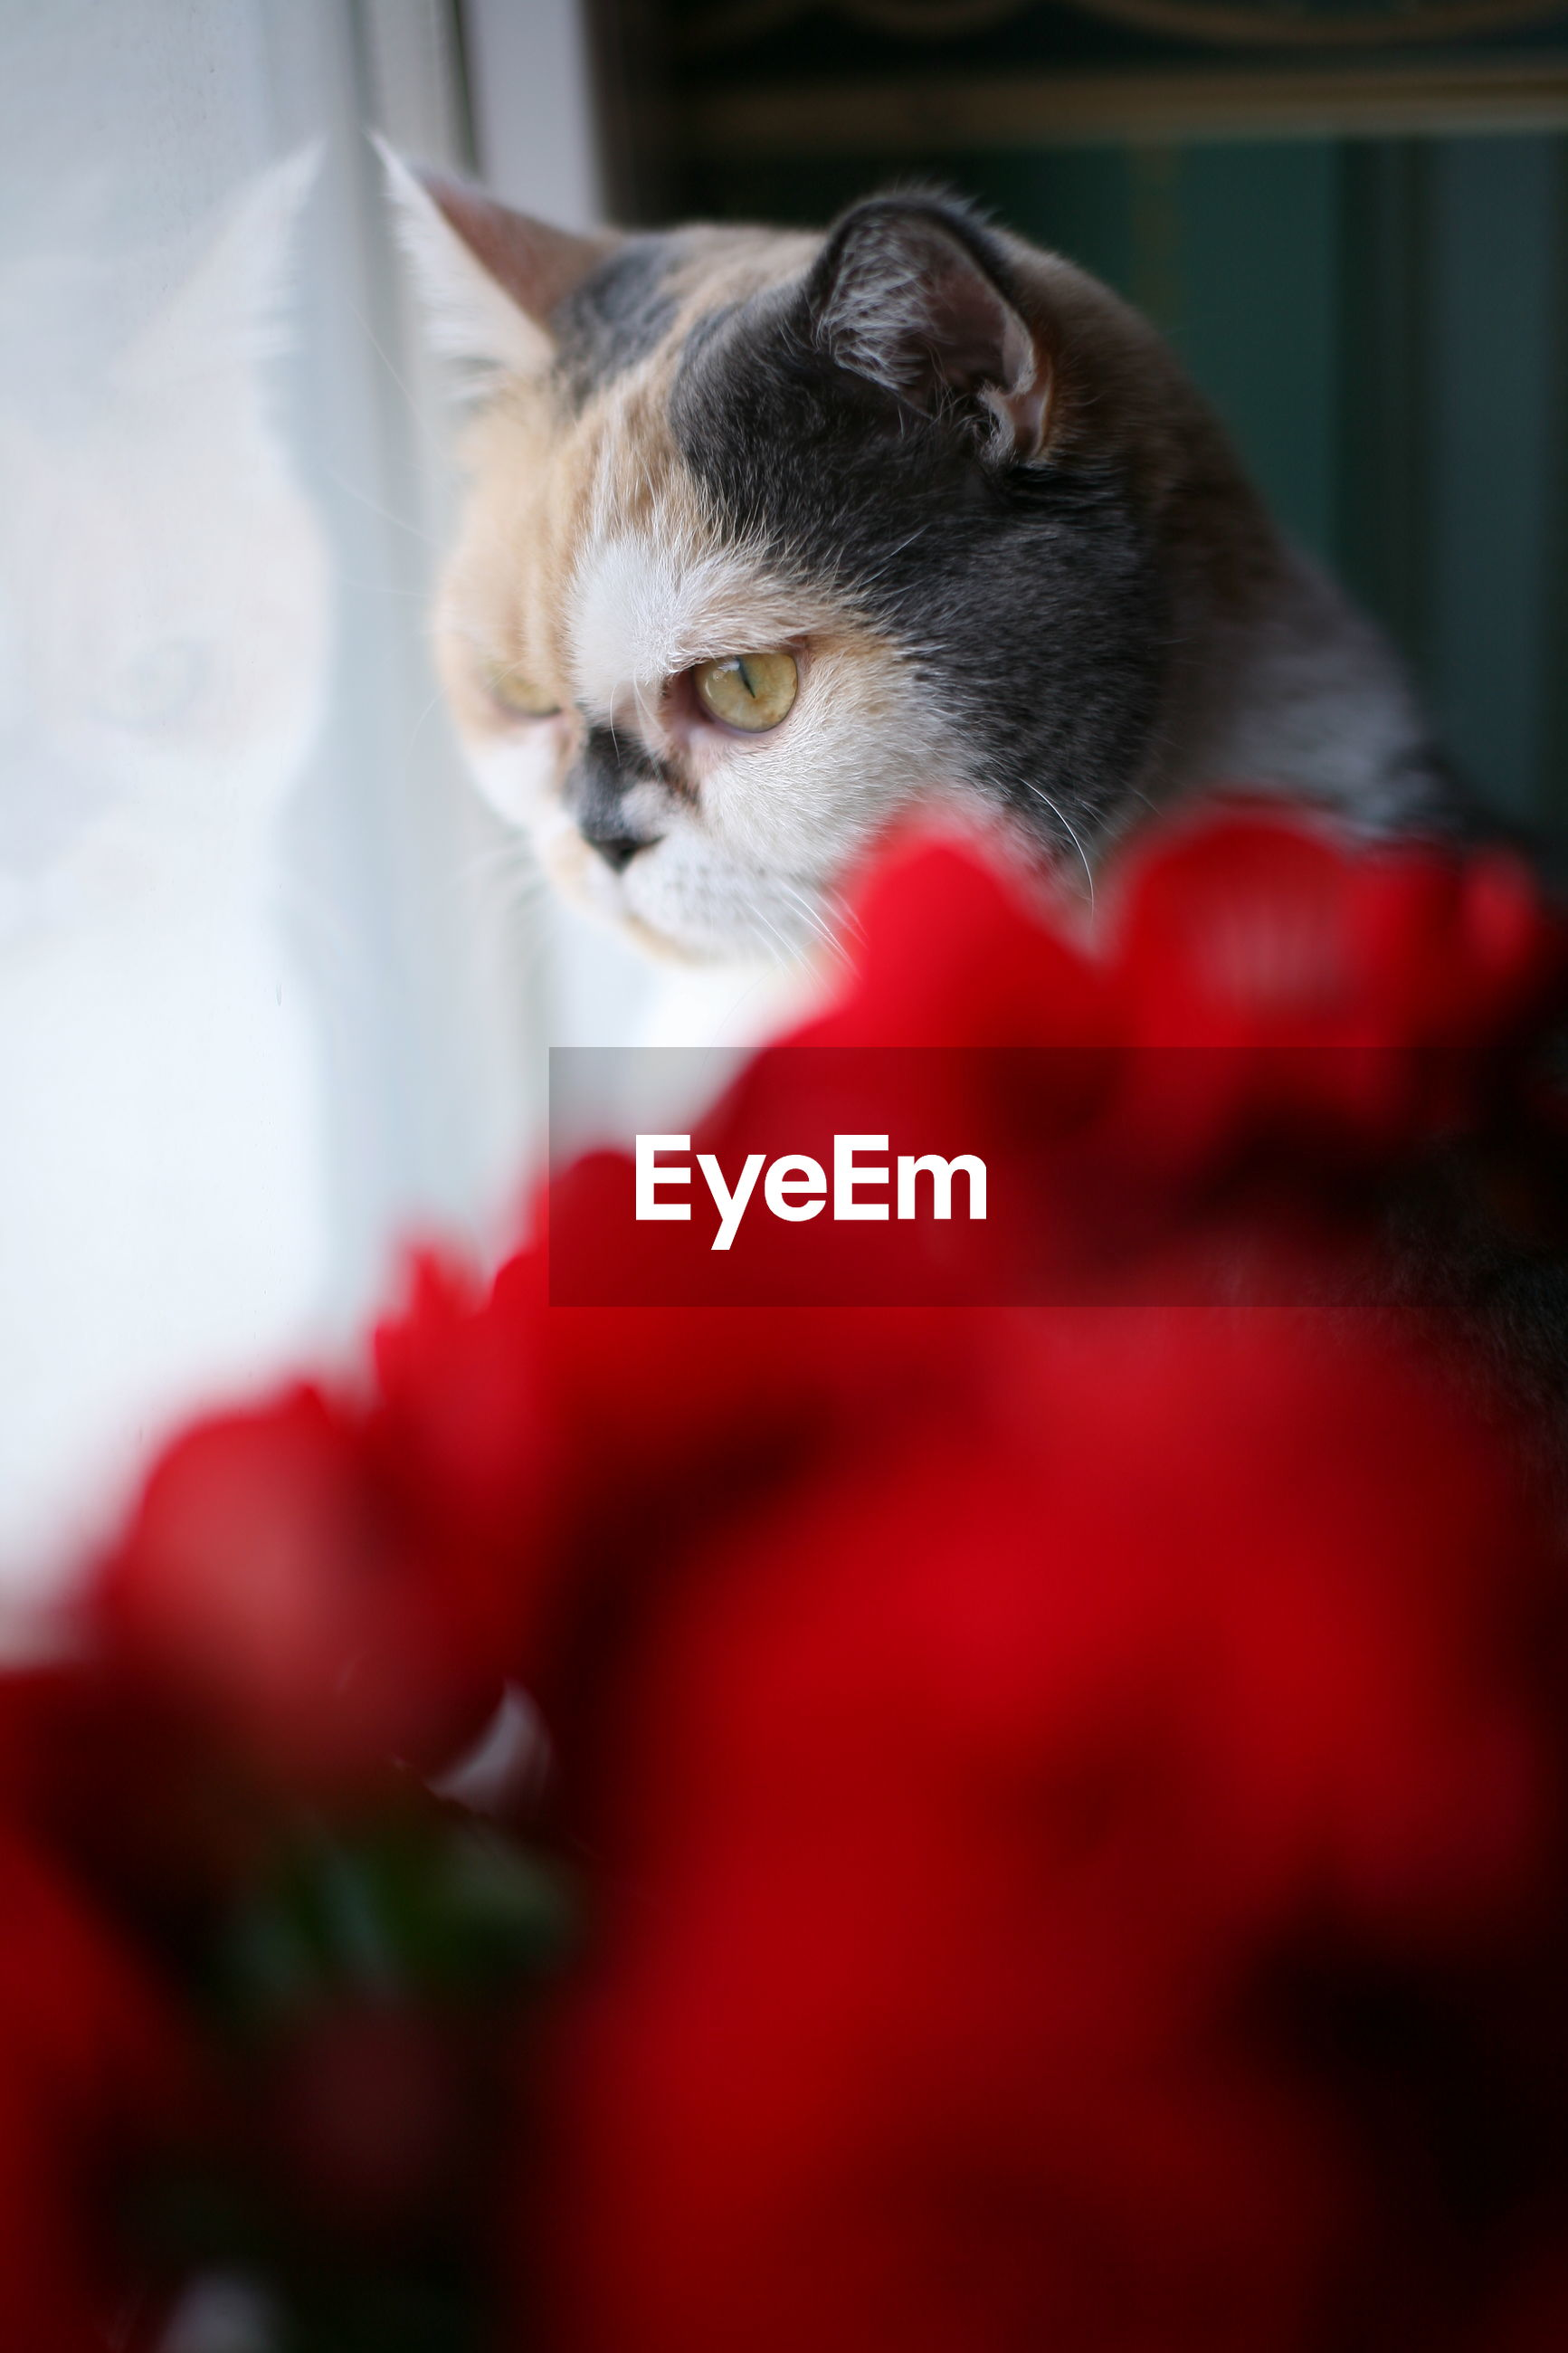 domestic, pets, domestic animals, mammal, cat, domestic cat, animal, feline, animal themes, one animal, vertebrate, red, selective focus, no people, indoors, close-up, relaxation, home interior, looking, portrait, animal head, whisker